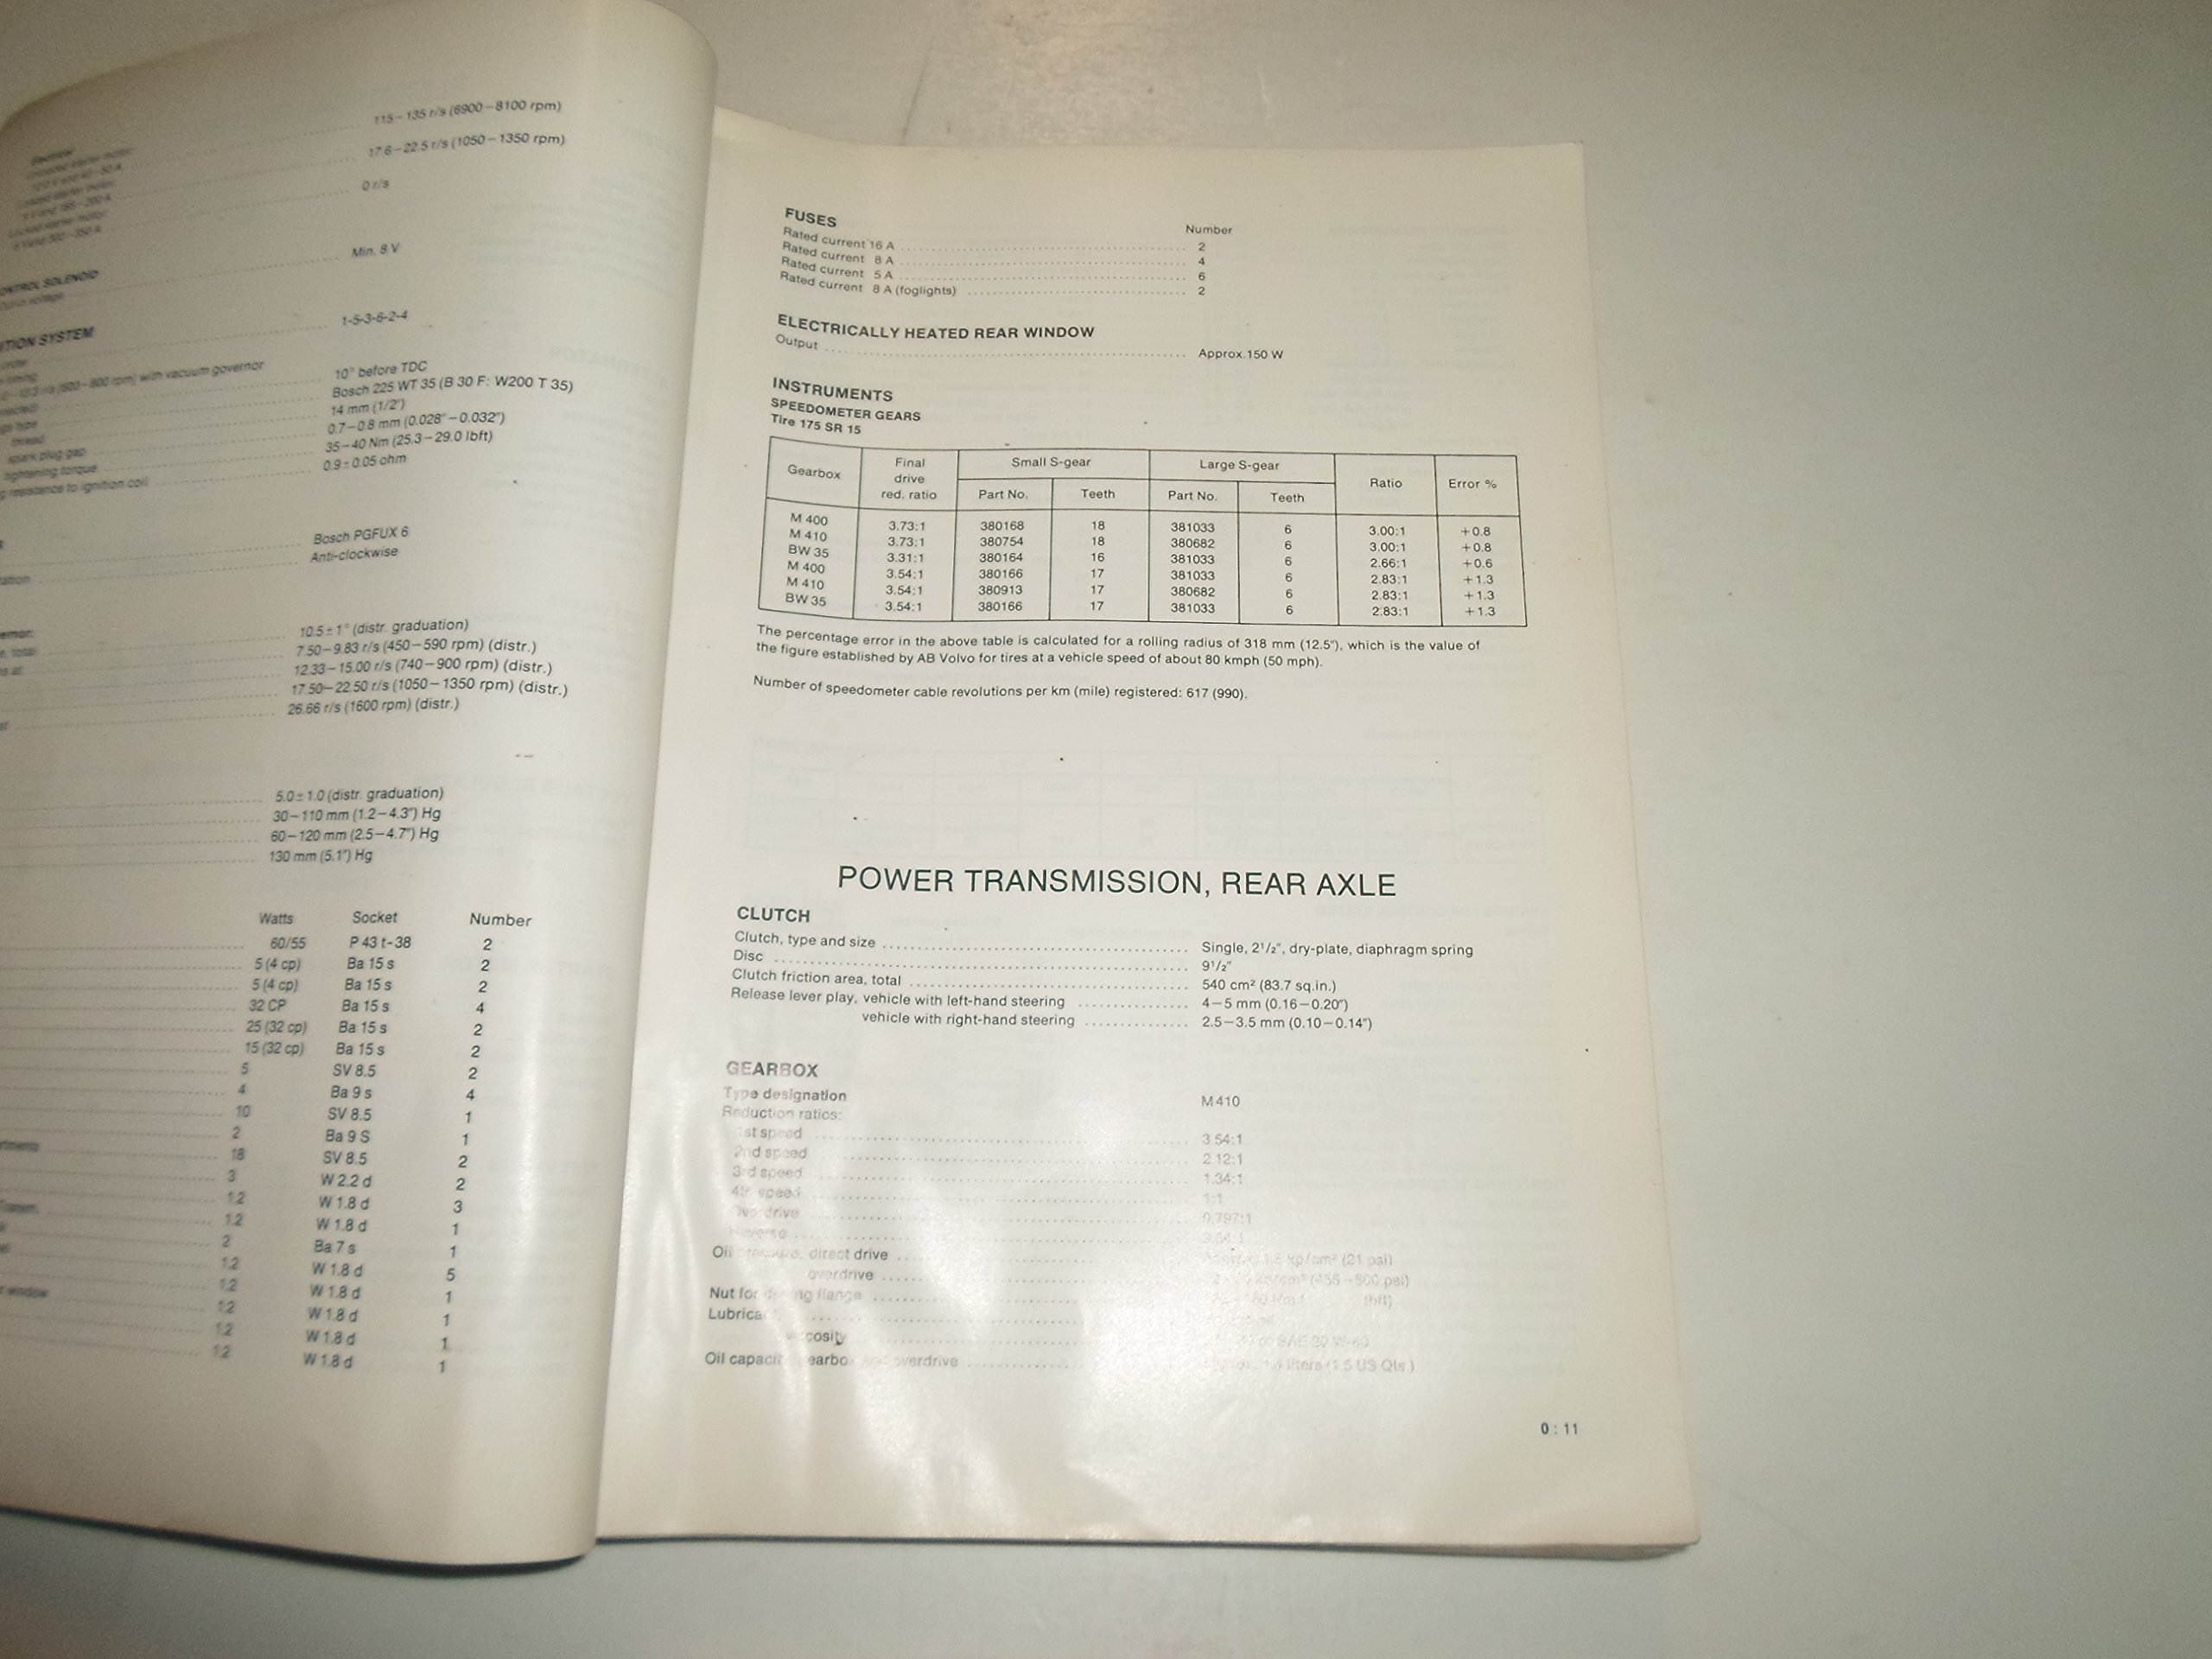 1975 Volvo 164 Service Repair Shop Manual DAMAGED: Volvo ...